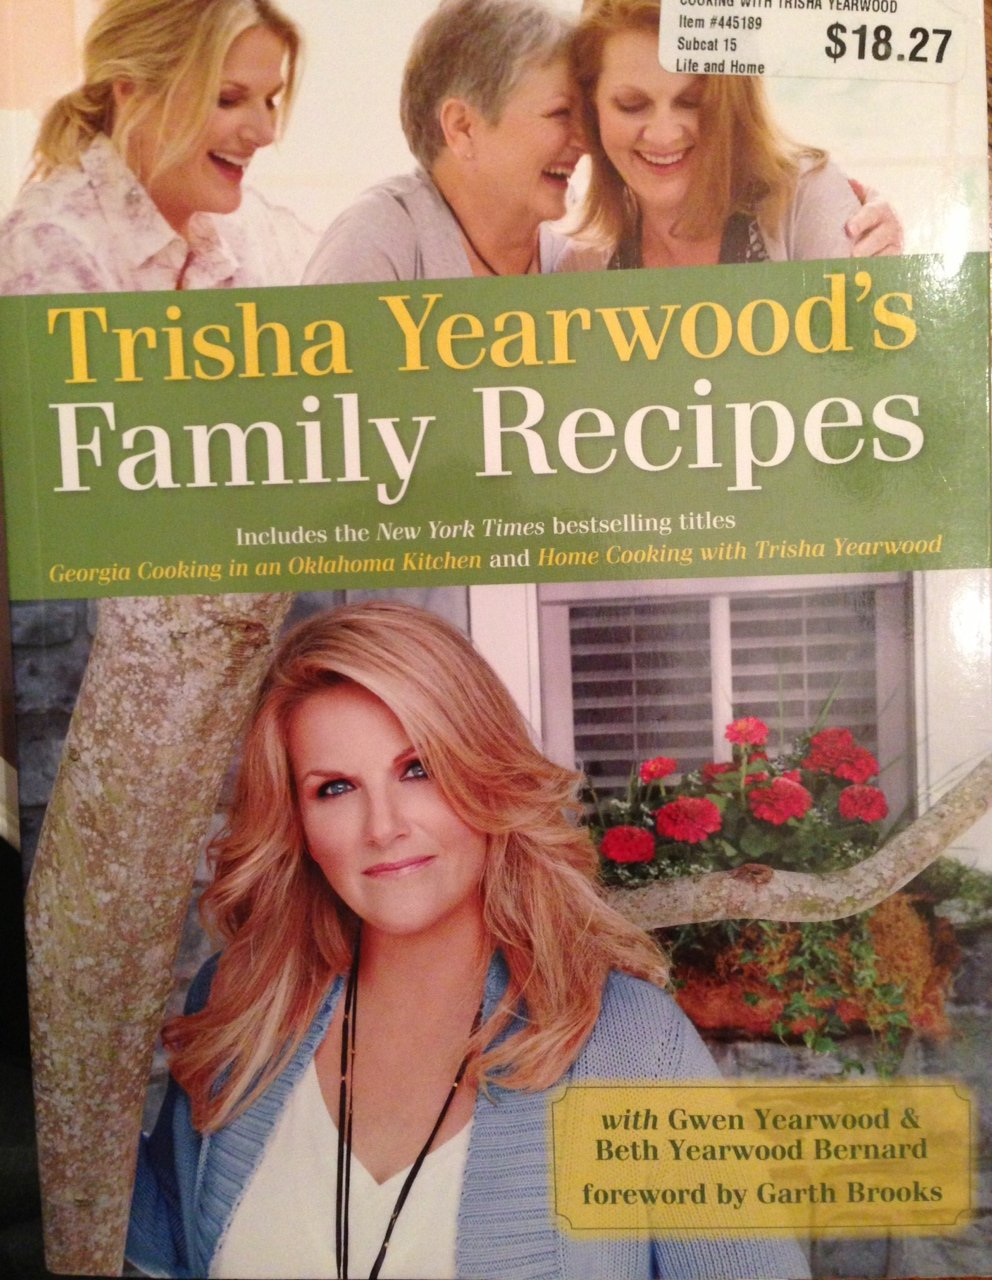 The New York Times Bestselling Titles Georgia Cooking In An Oklahoma  Kitchen And Home Cooking With Trisha Yearwood: 9780307292193: Amazon:  Books